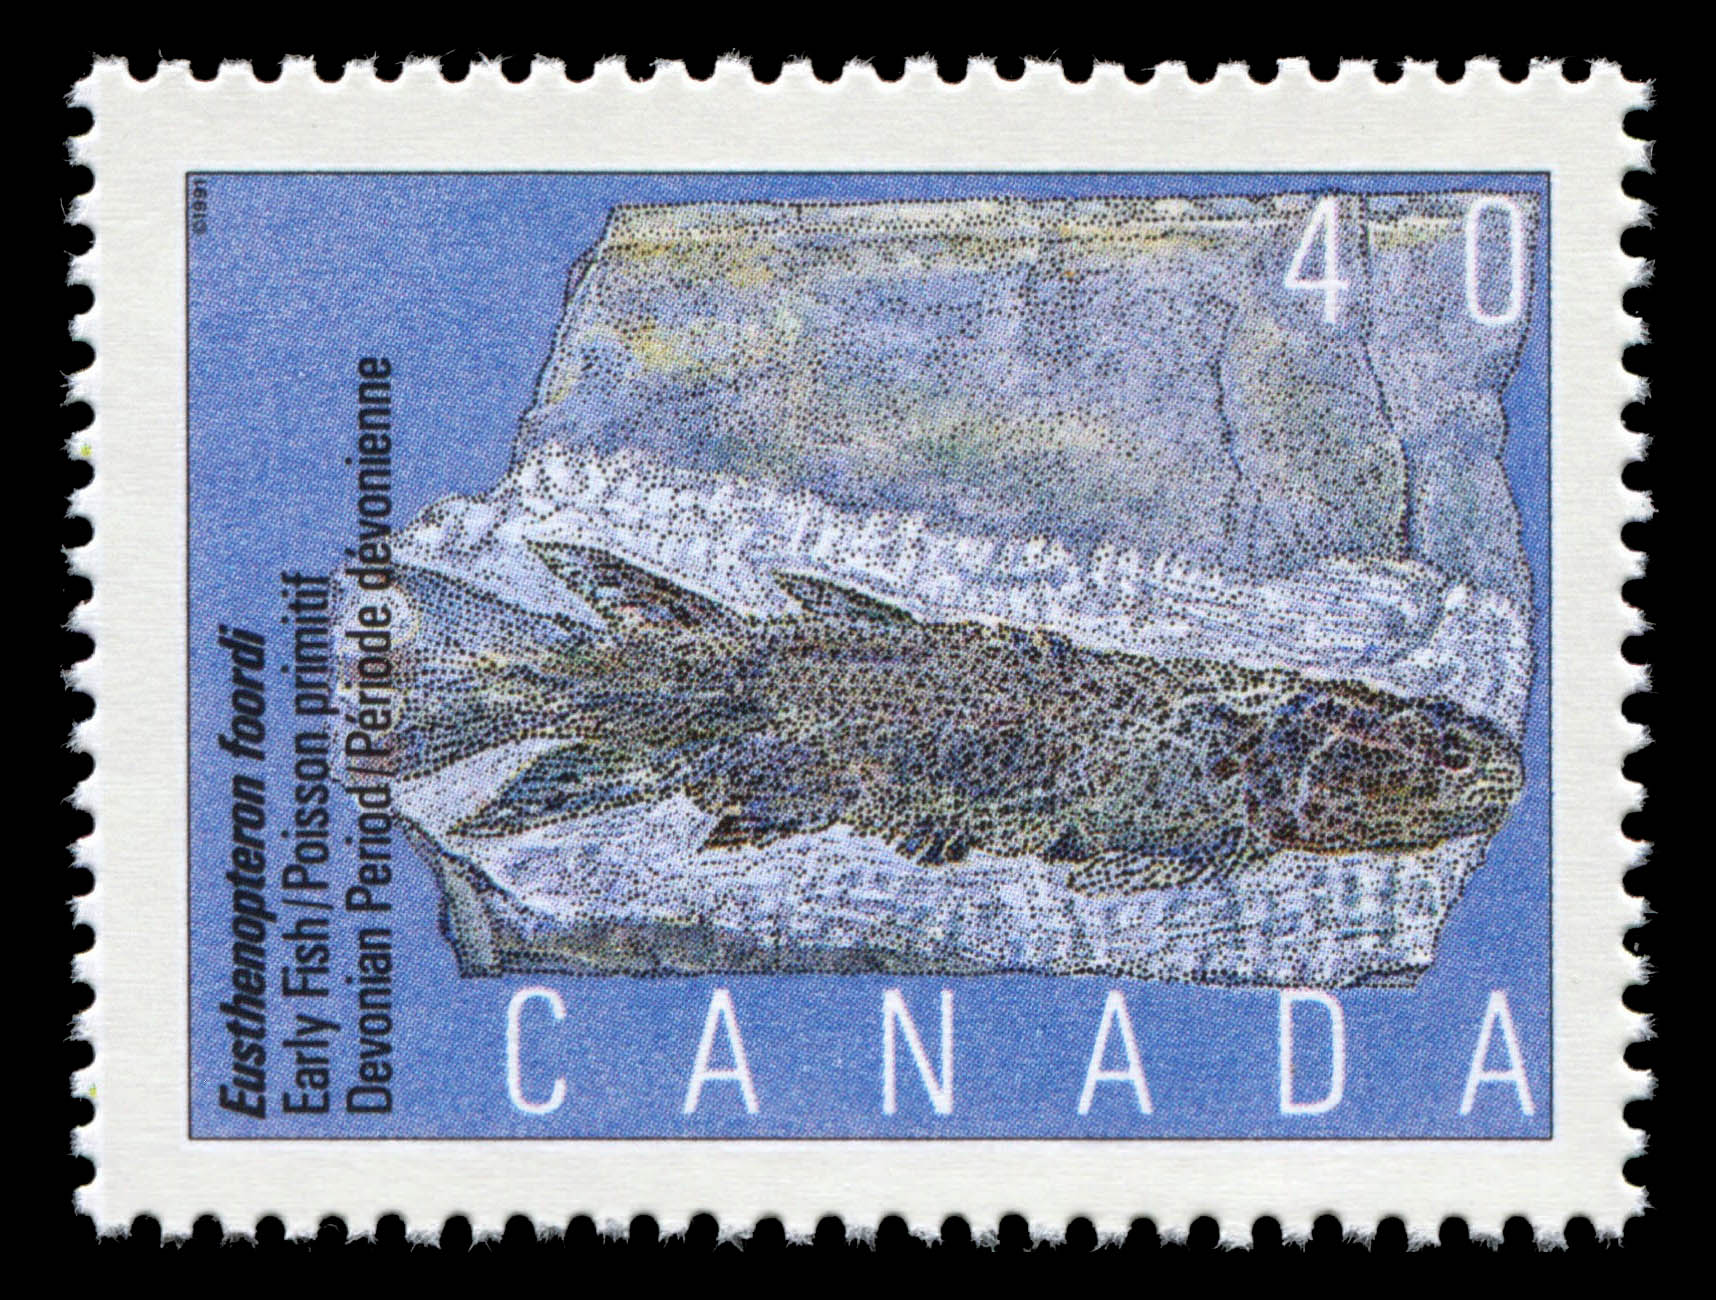 Eusthenopteron foordi, Early Fish, Devonian Period Canada Postage Stamp | Prehistoric Life in Canada, The Age of Primitive Vertebrates